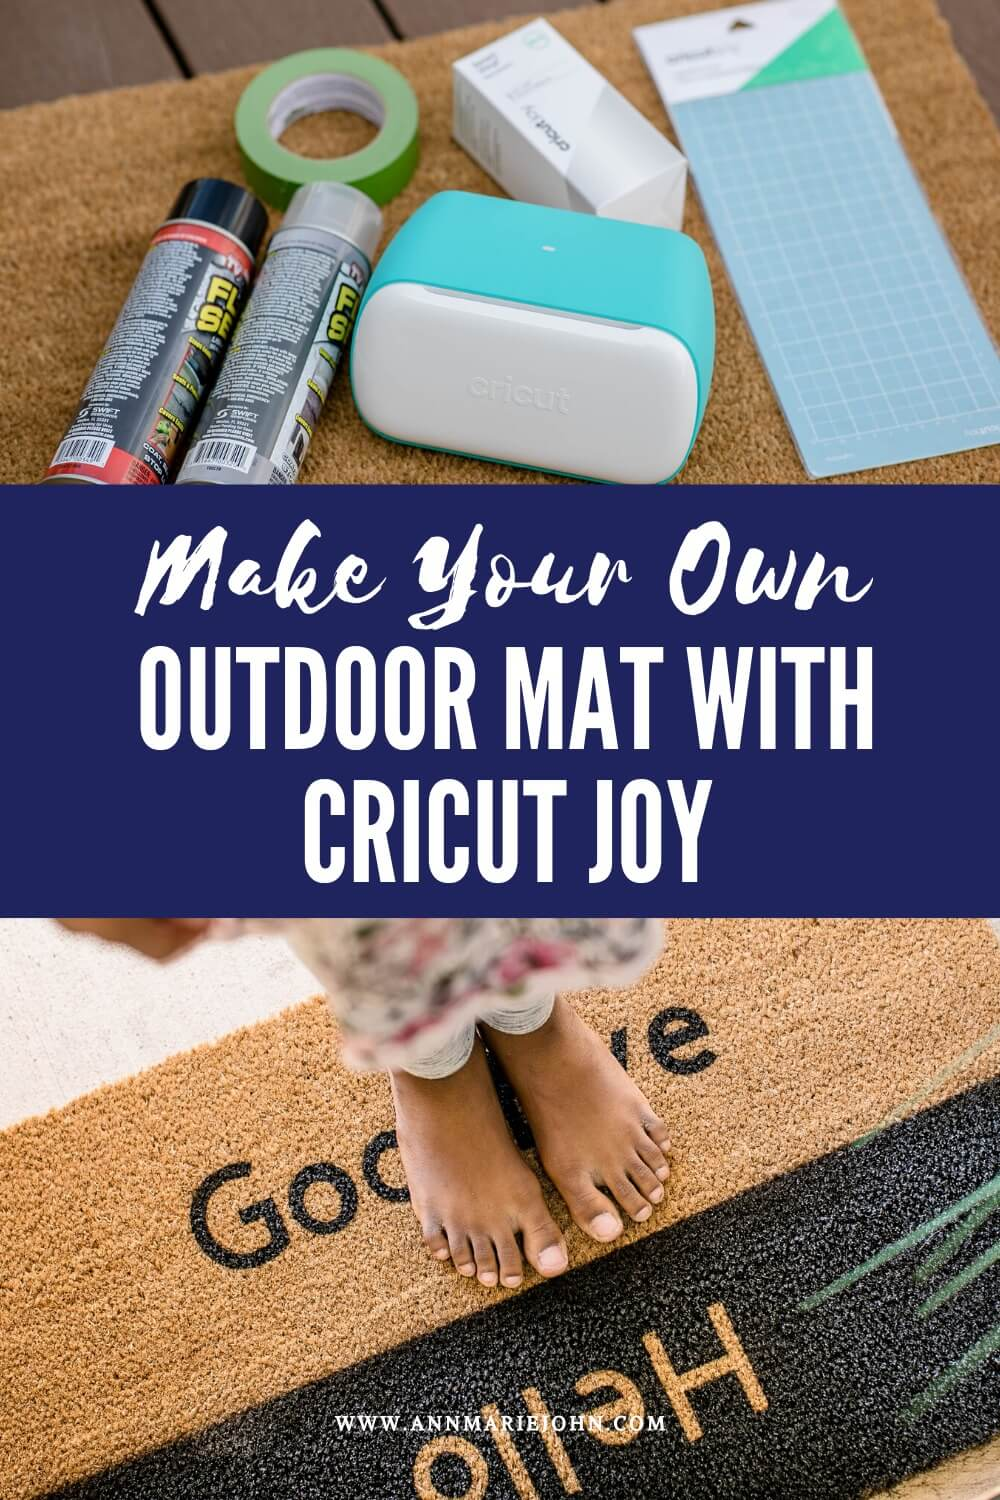 DIY Personalized Outdoor Mats with Cricut Joy